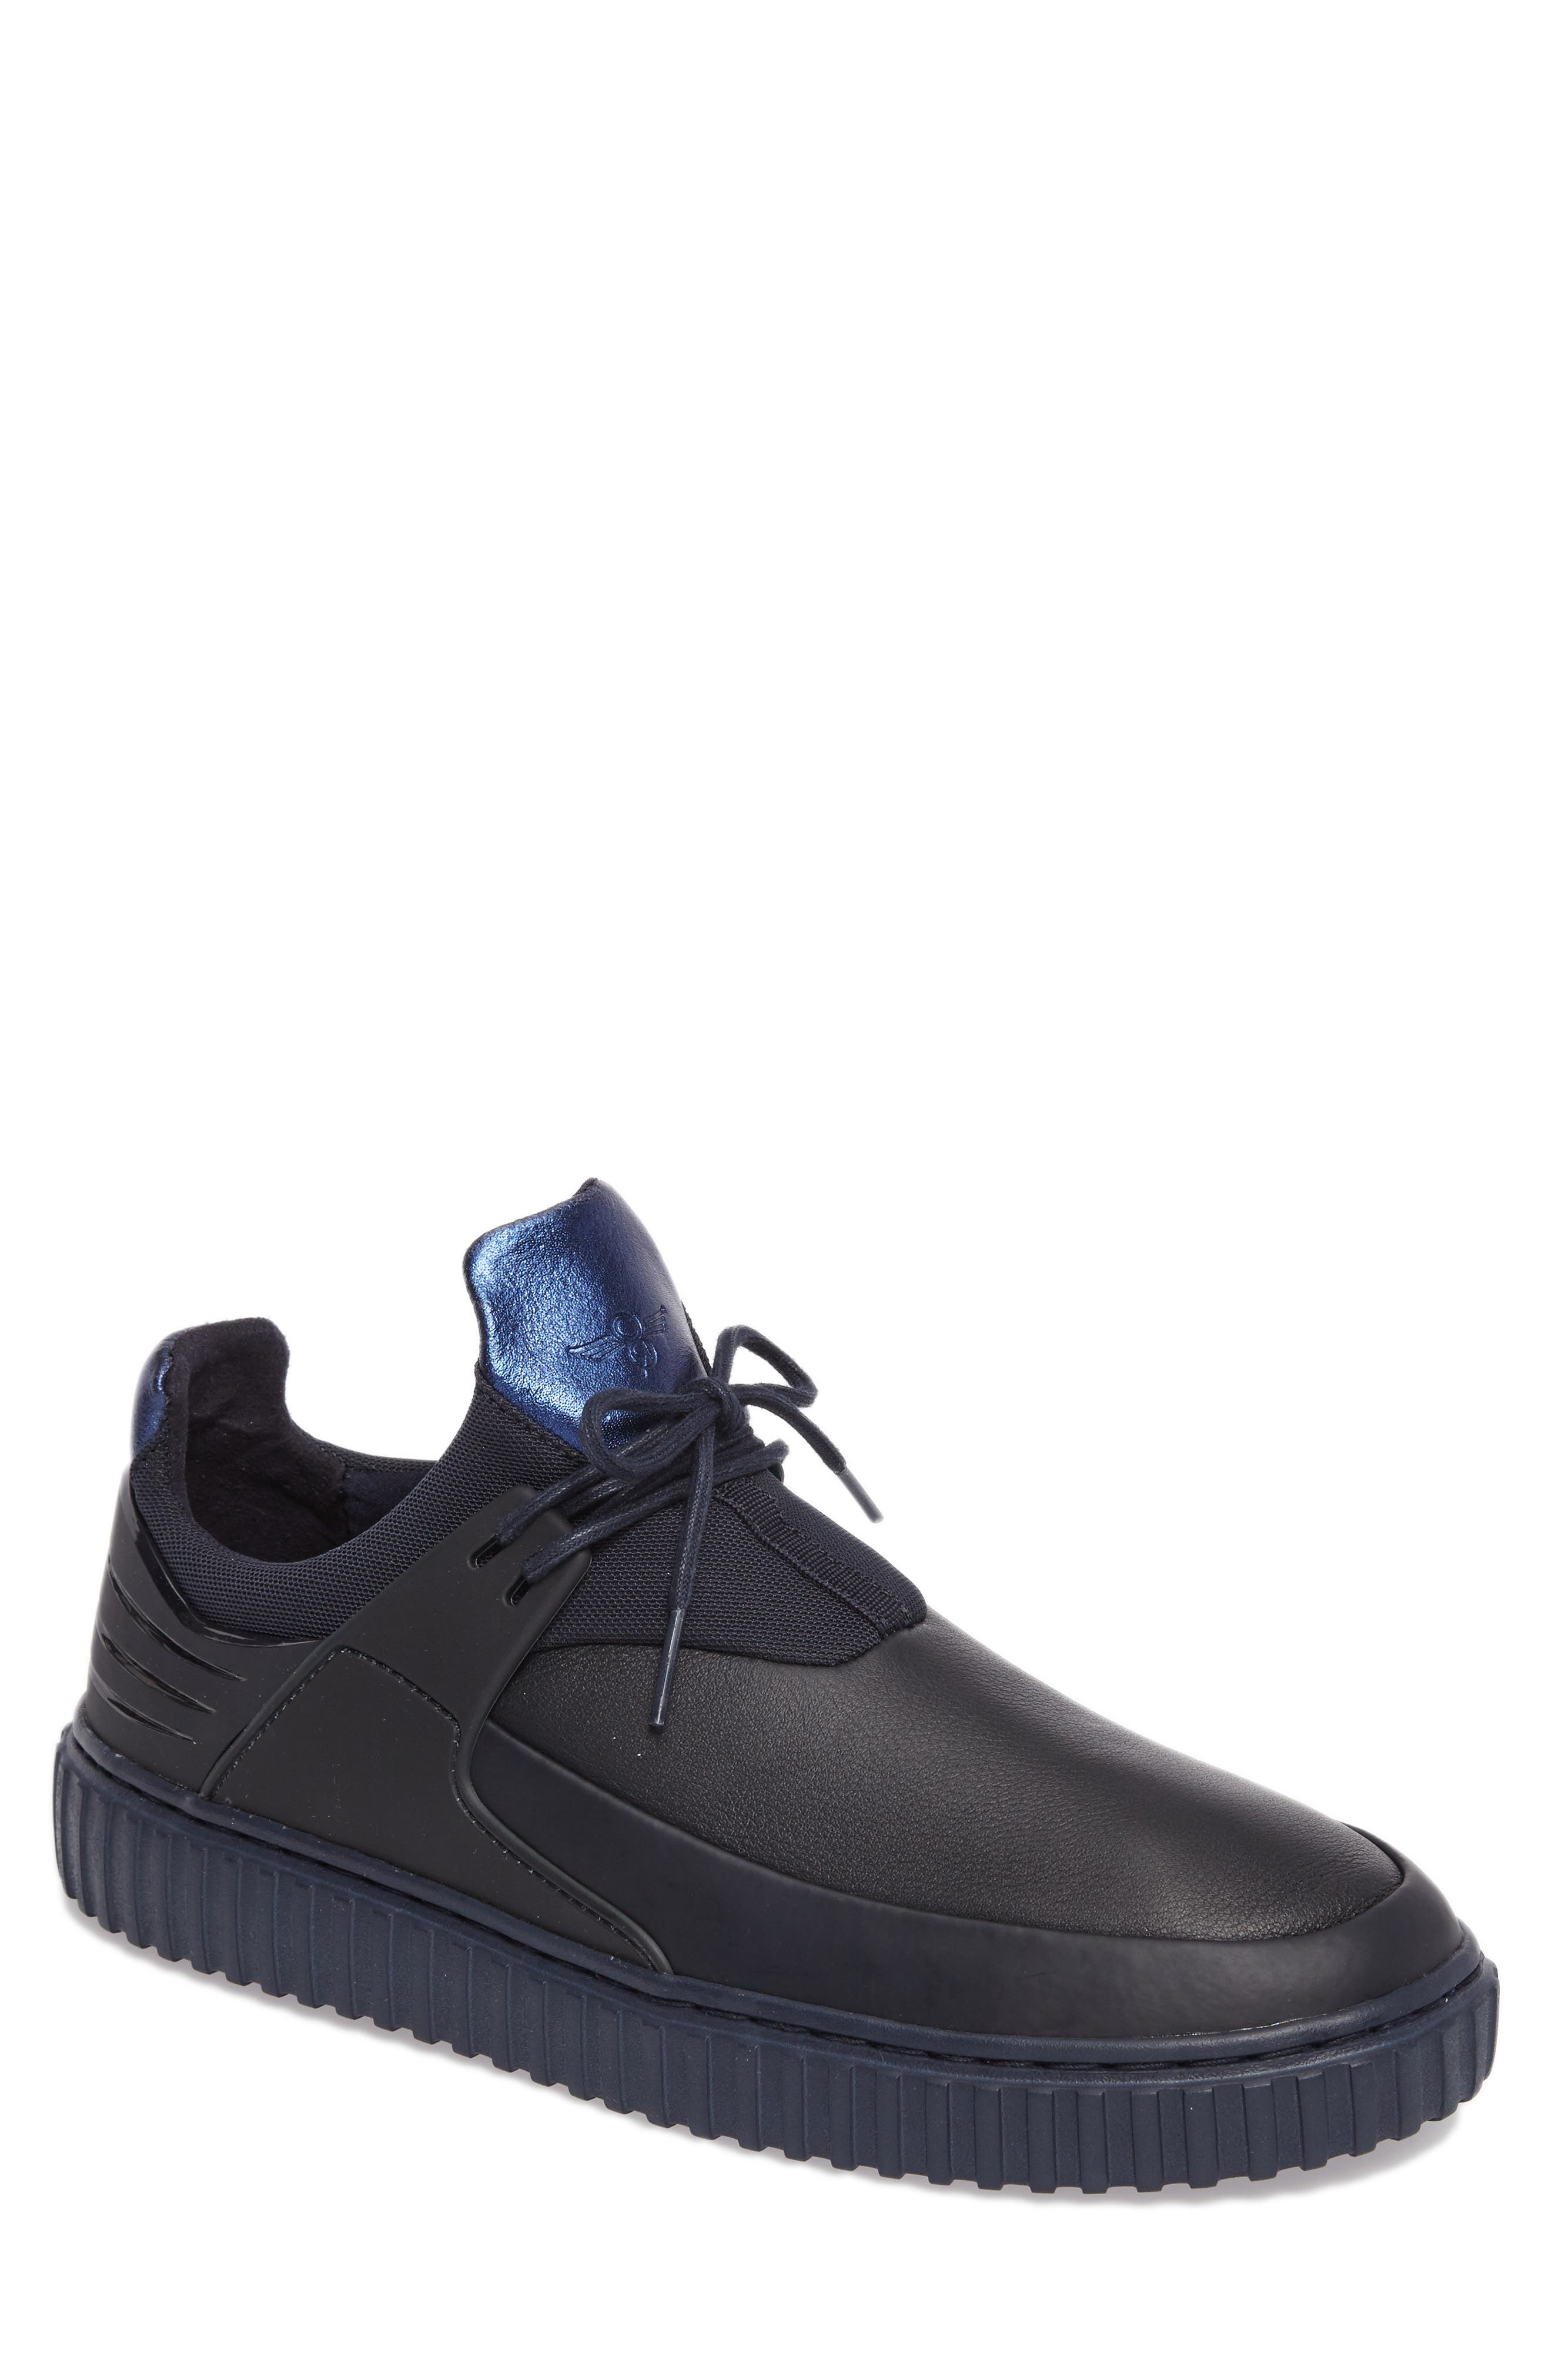 Castucci Mid Sneaker,                             Main thumbnail 1, color,                             Navy Leather